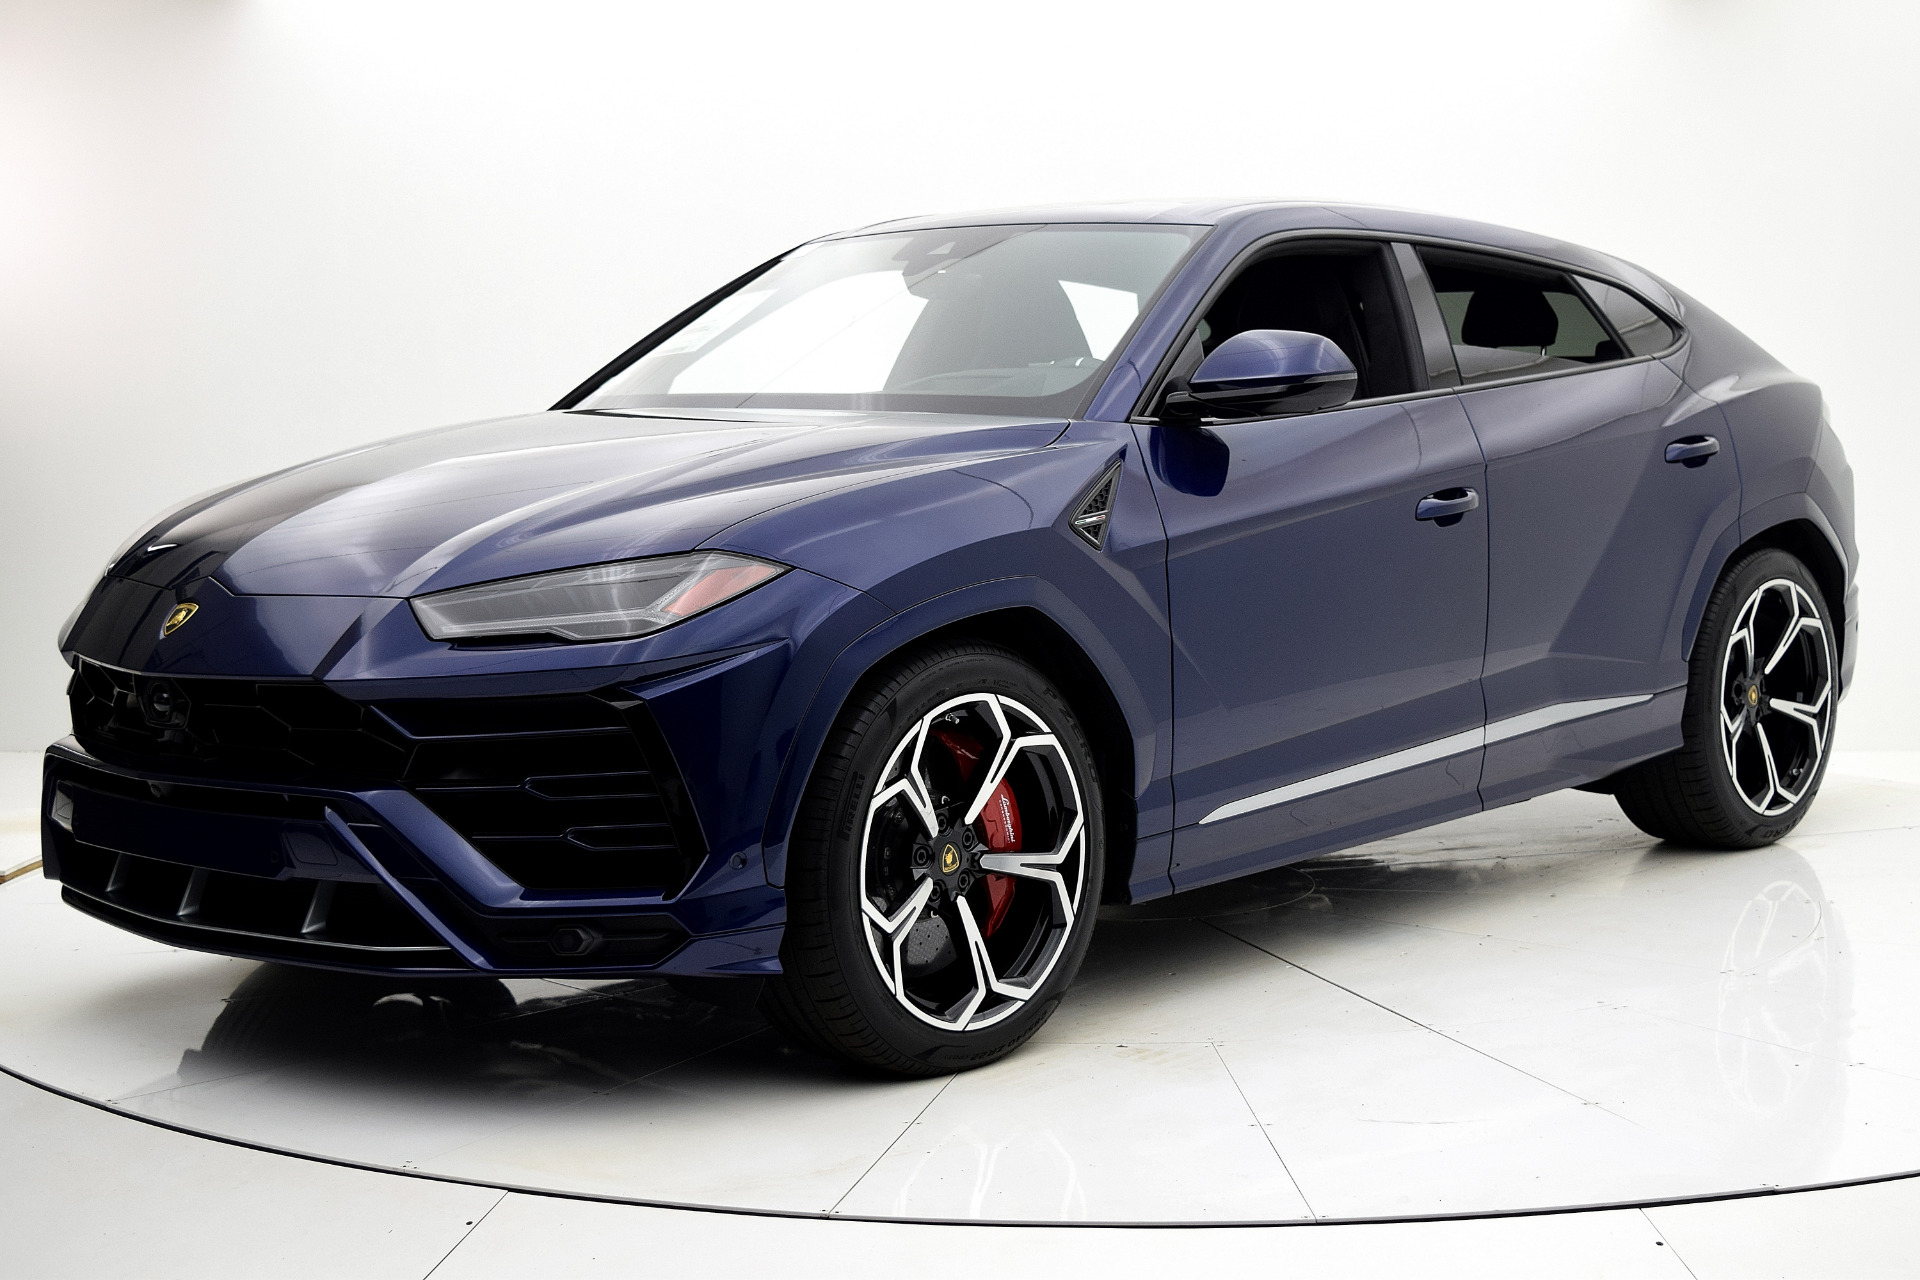 Lamborghini Urus 2019 Blu Astraeus For Sale $240362 Stock Number 19L131